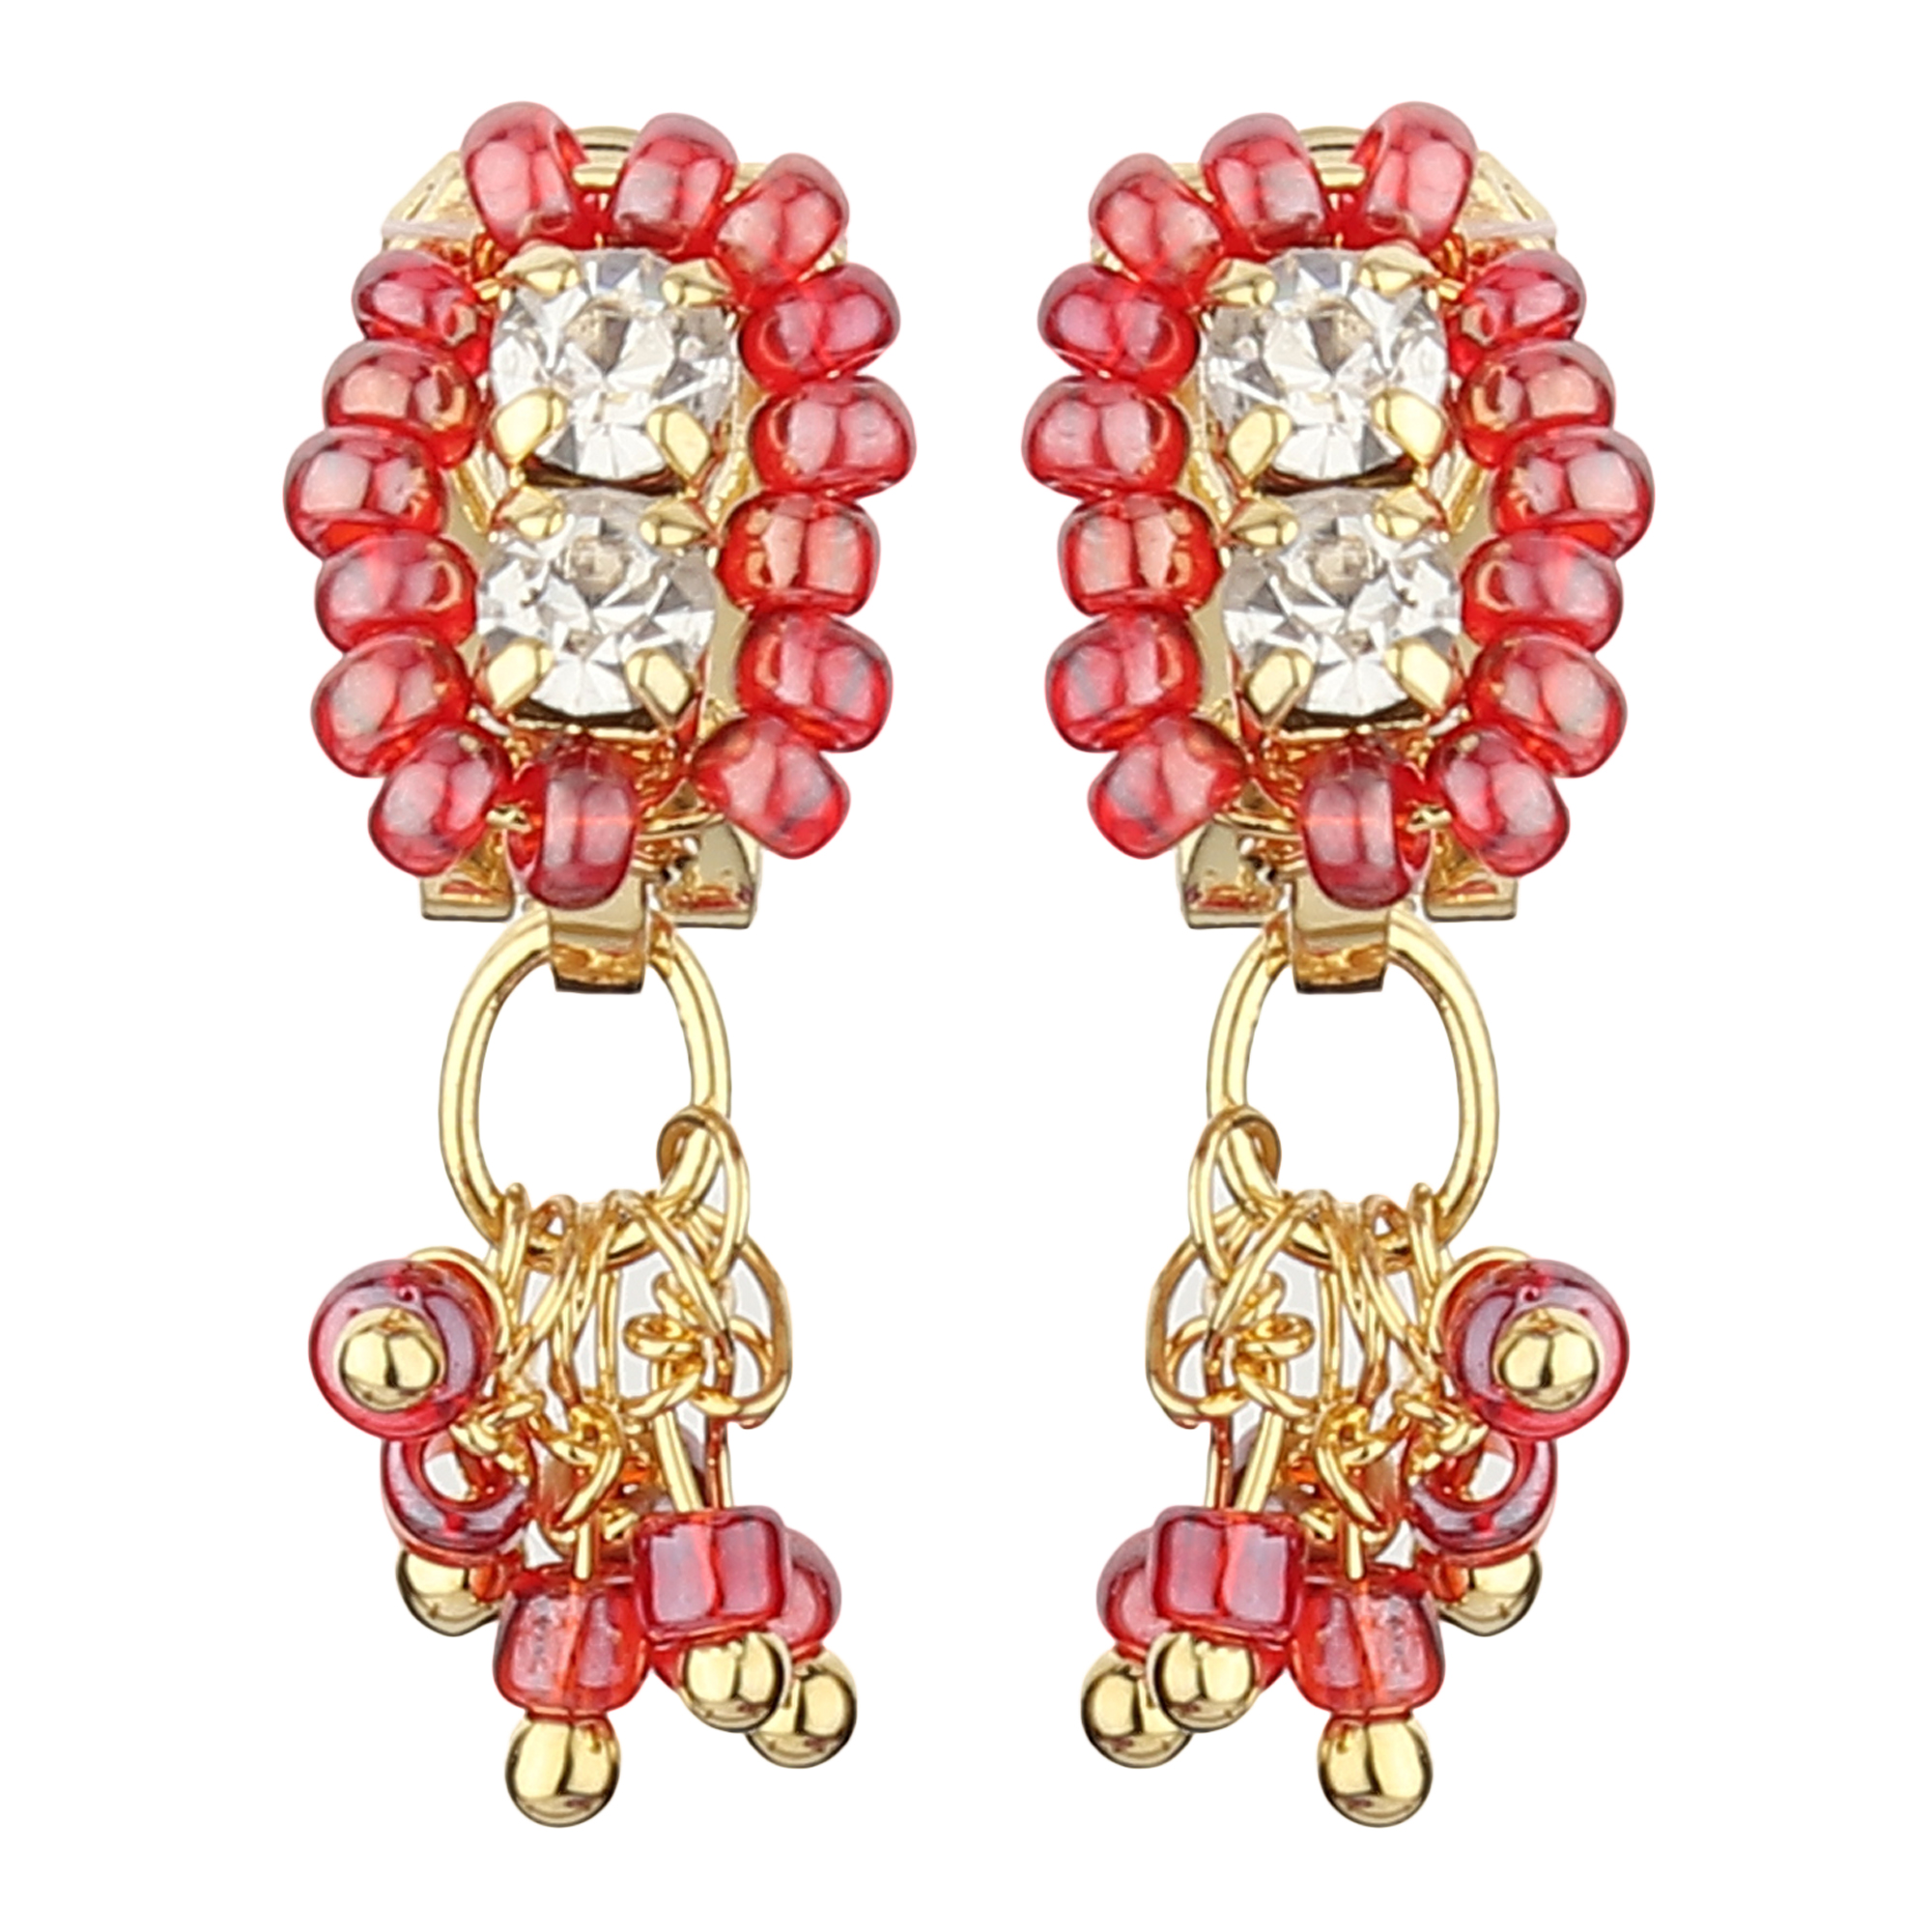 FirstBlush Clip On Earrings for Non Piearced Ears for Women & Girls; Plating: Gold; Color: Blush (Pink); Size: 20 X 8mm; Wt.: 2gm. (MIEC104M116)